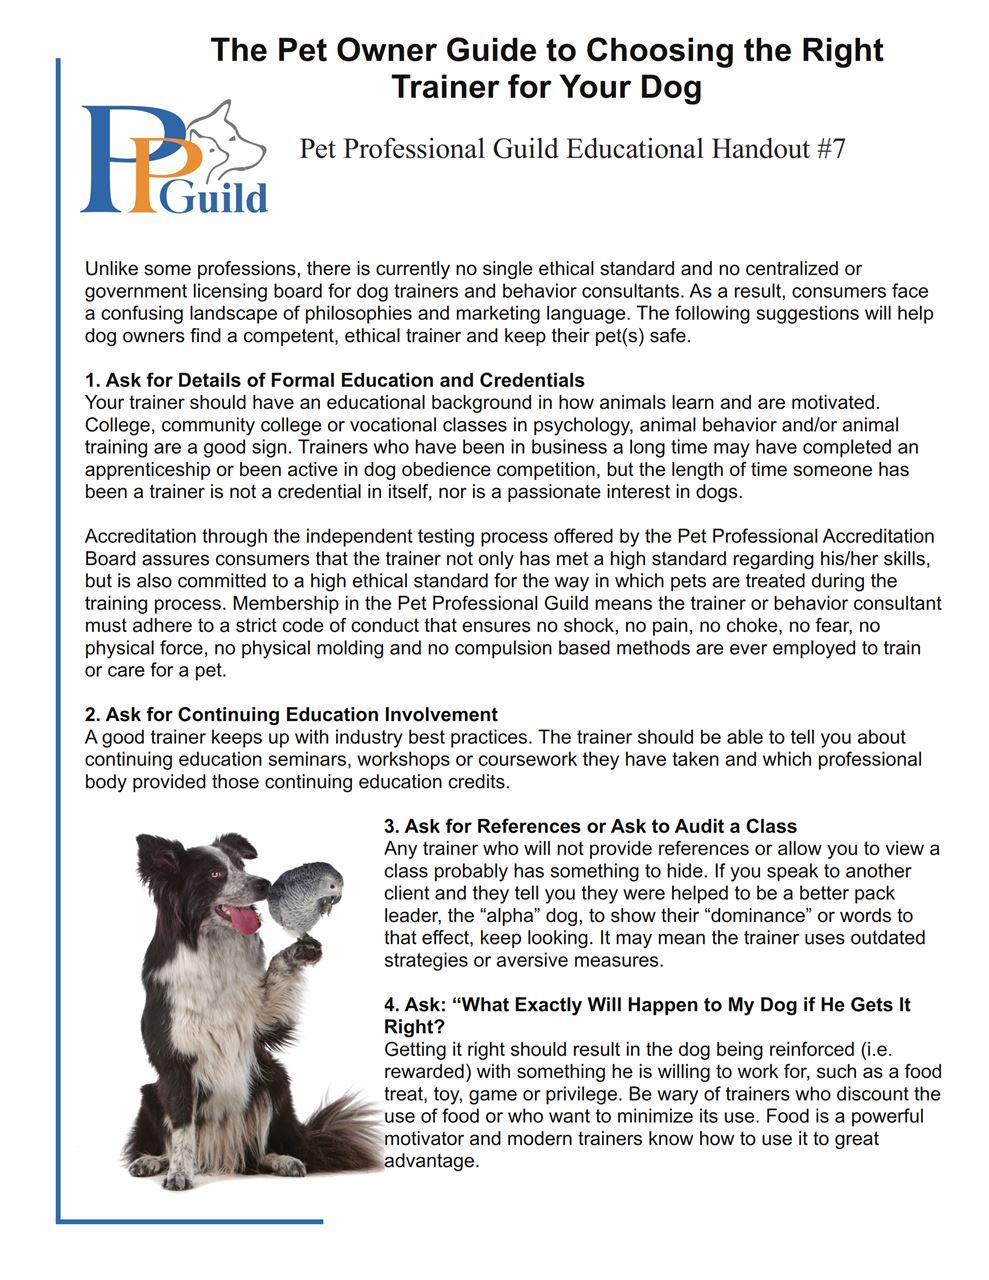 The Pet Professional Guild - Canine Advocacy